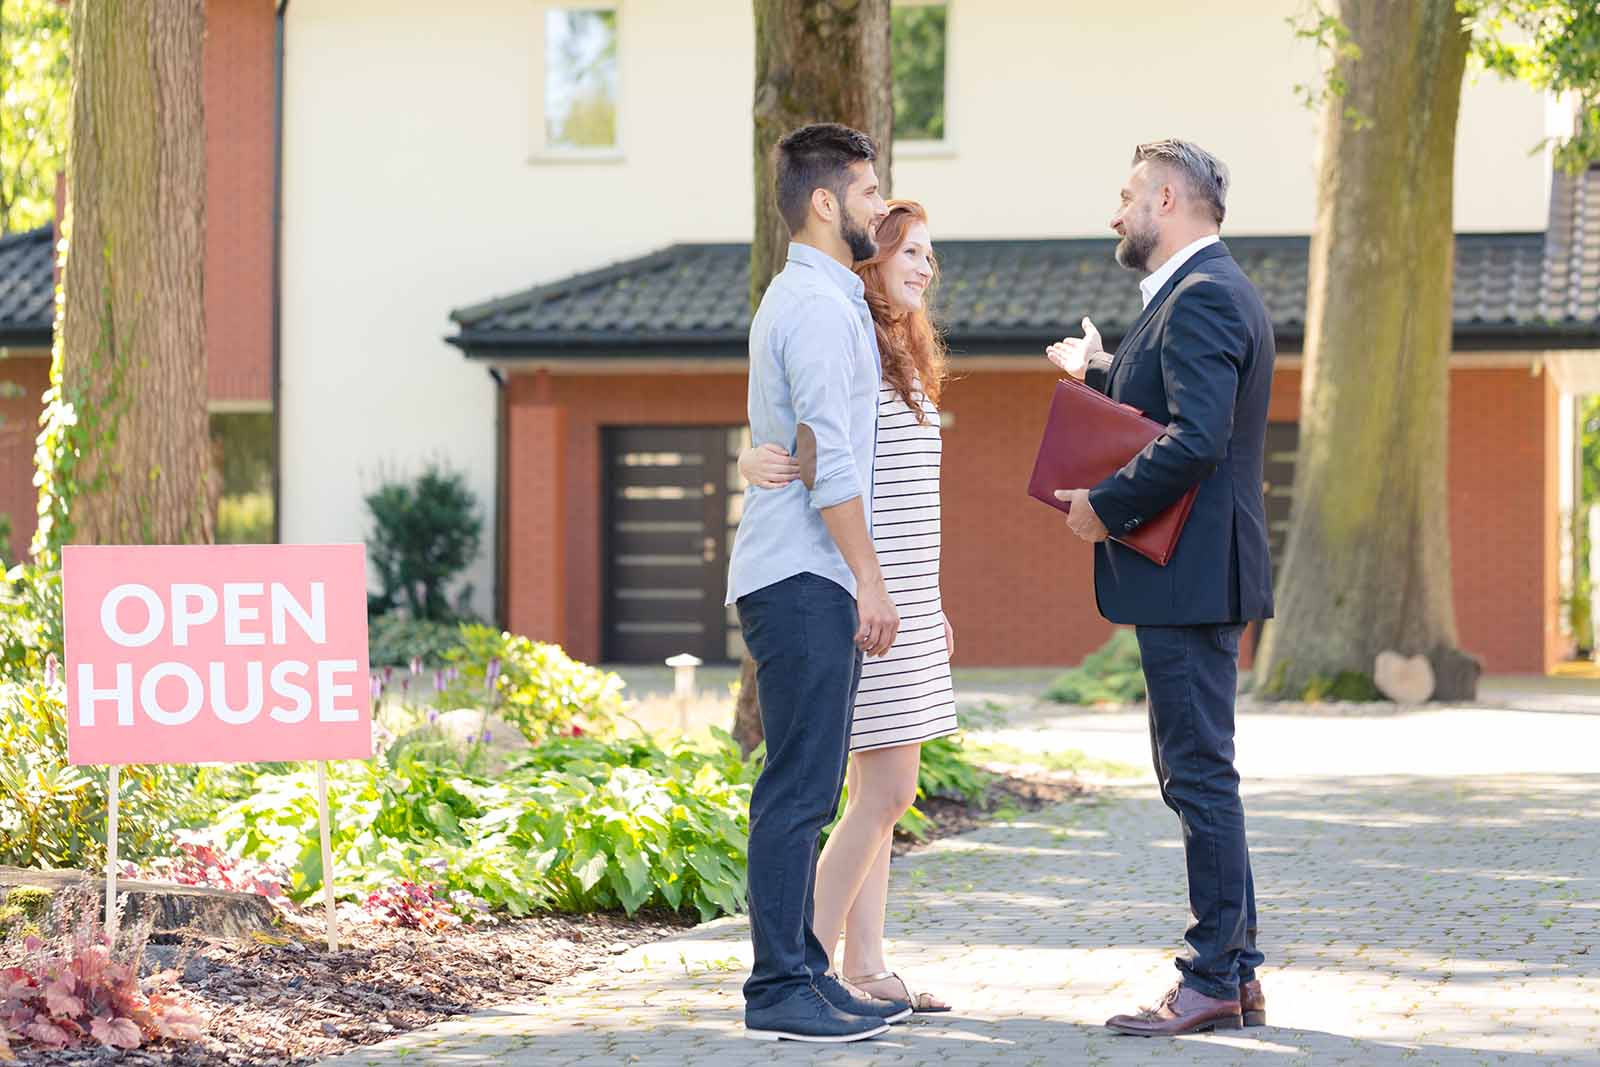 How to Get Ready to Buy a Home